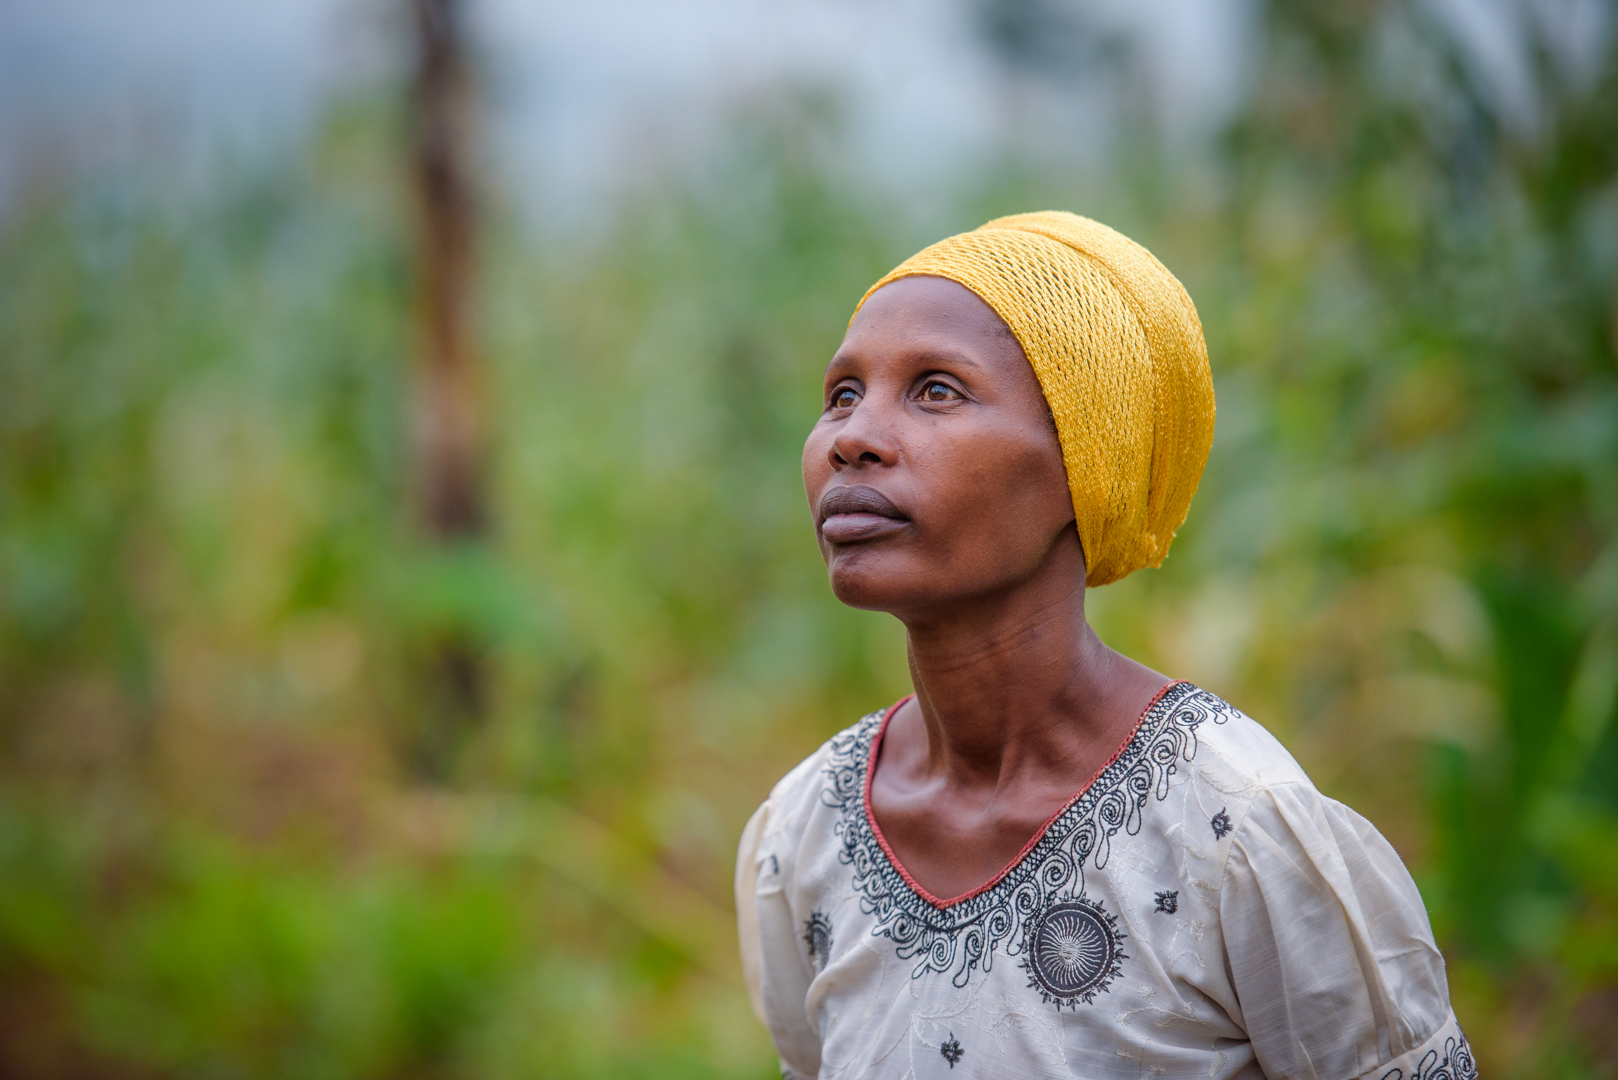 Life lessons from inspiring women around the world | World Vision